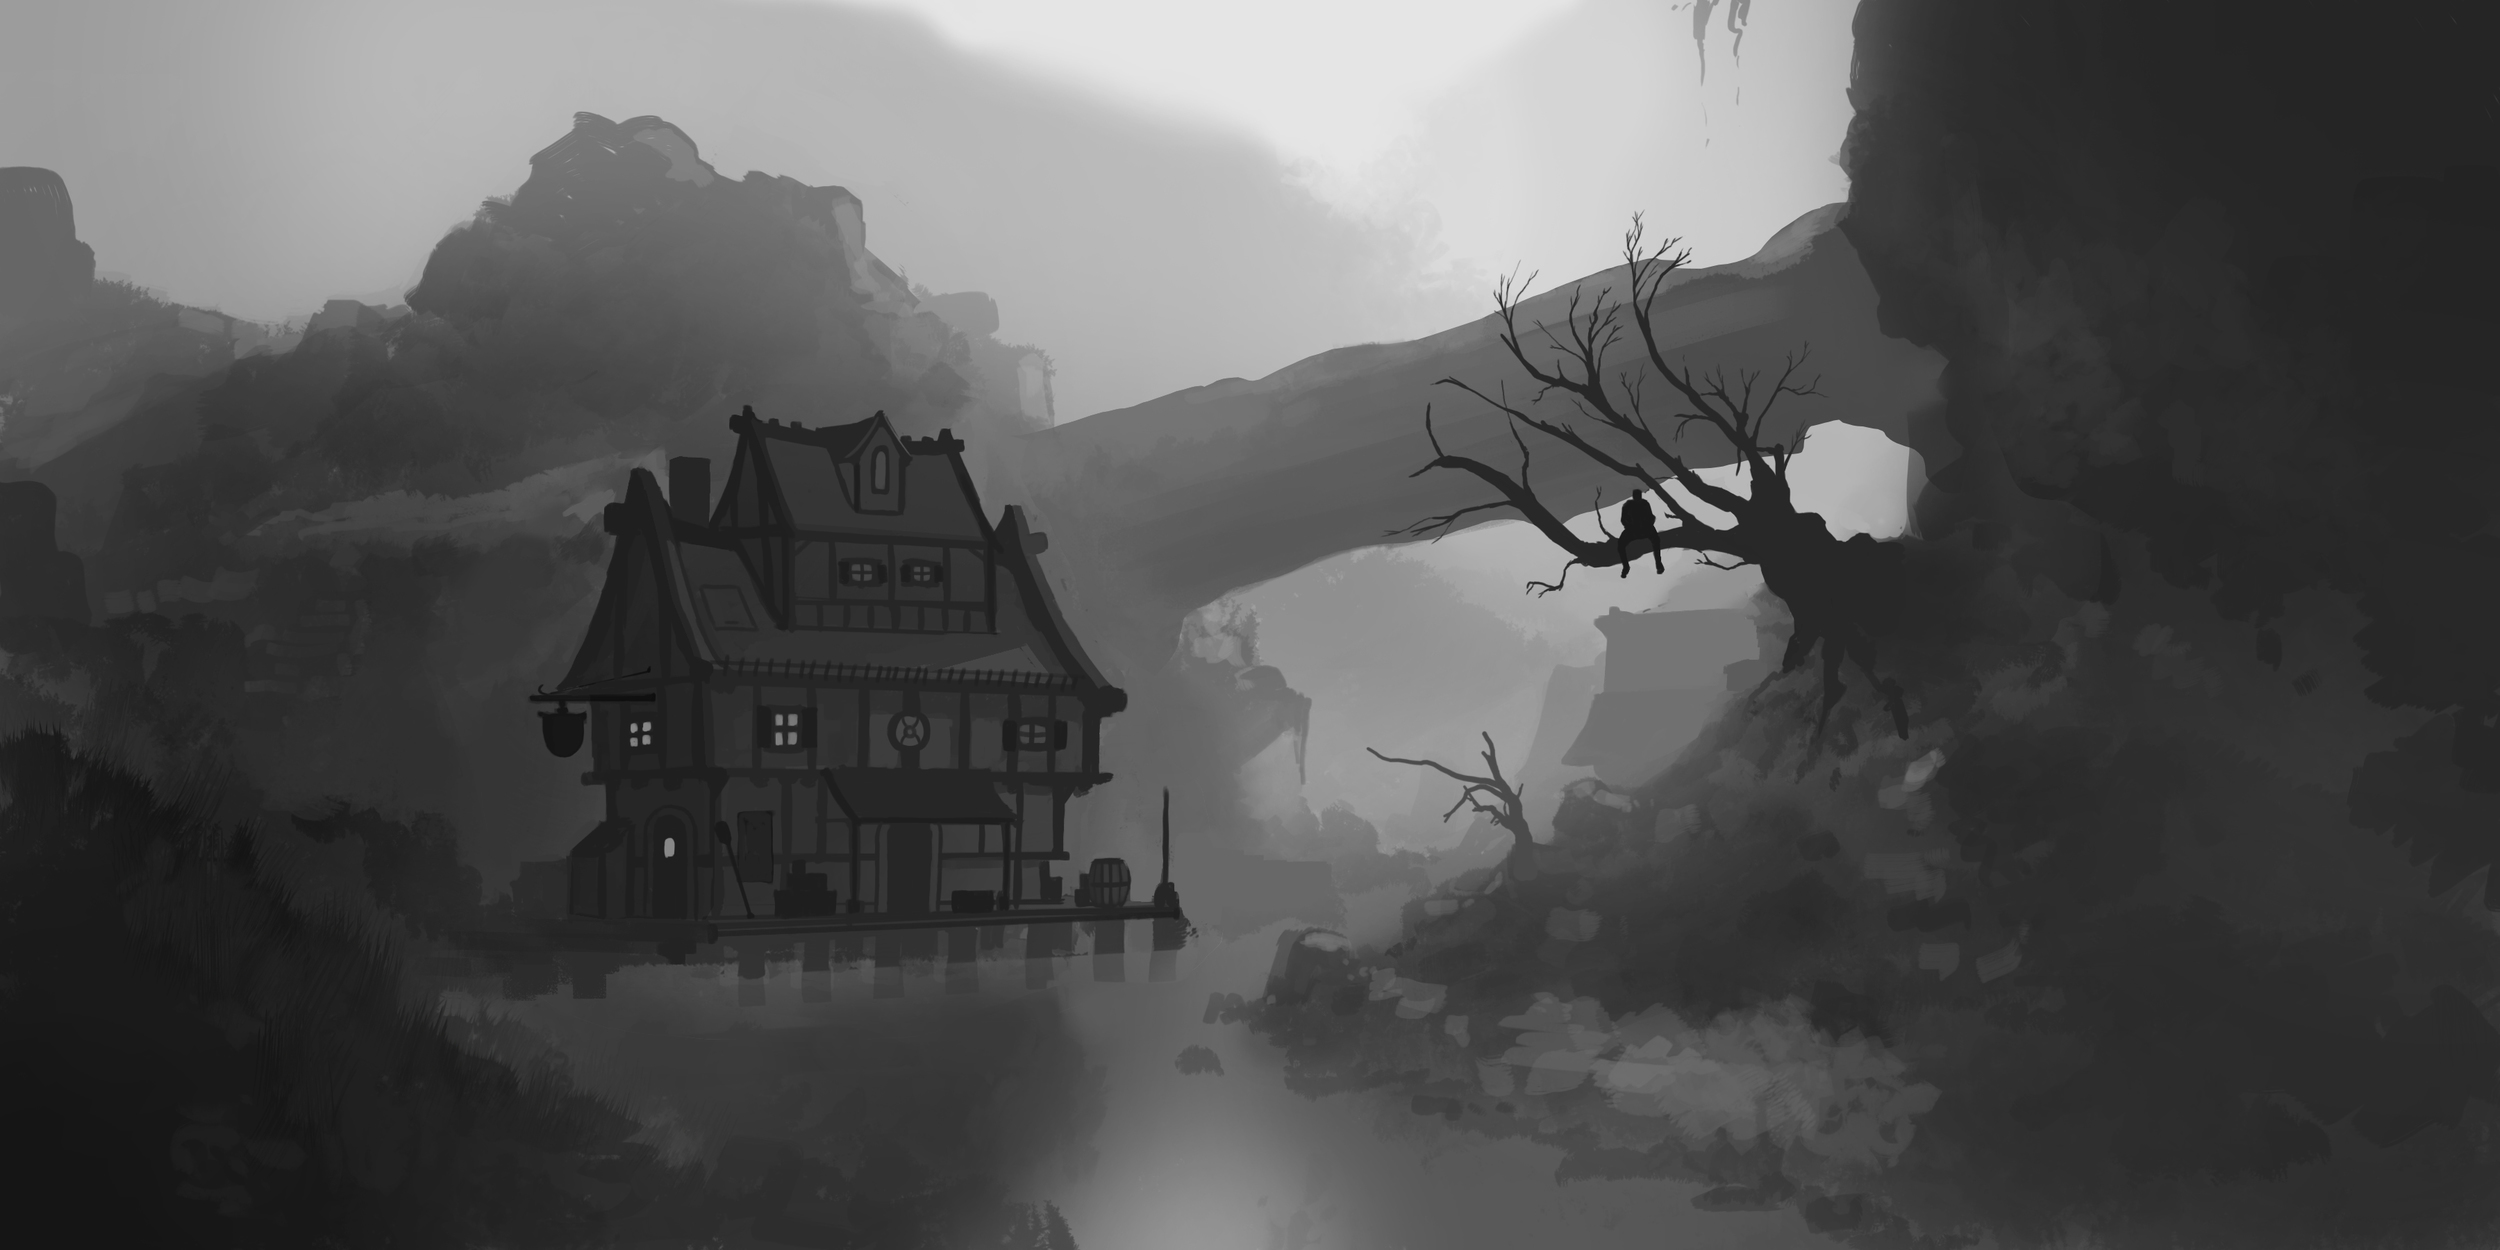 James_Chao_River_House_Sketch